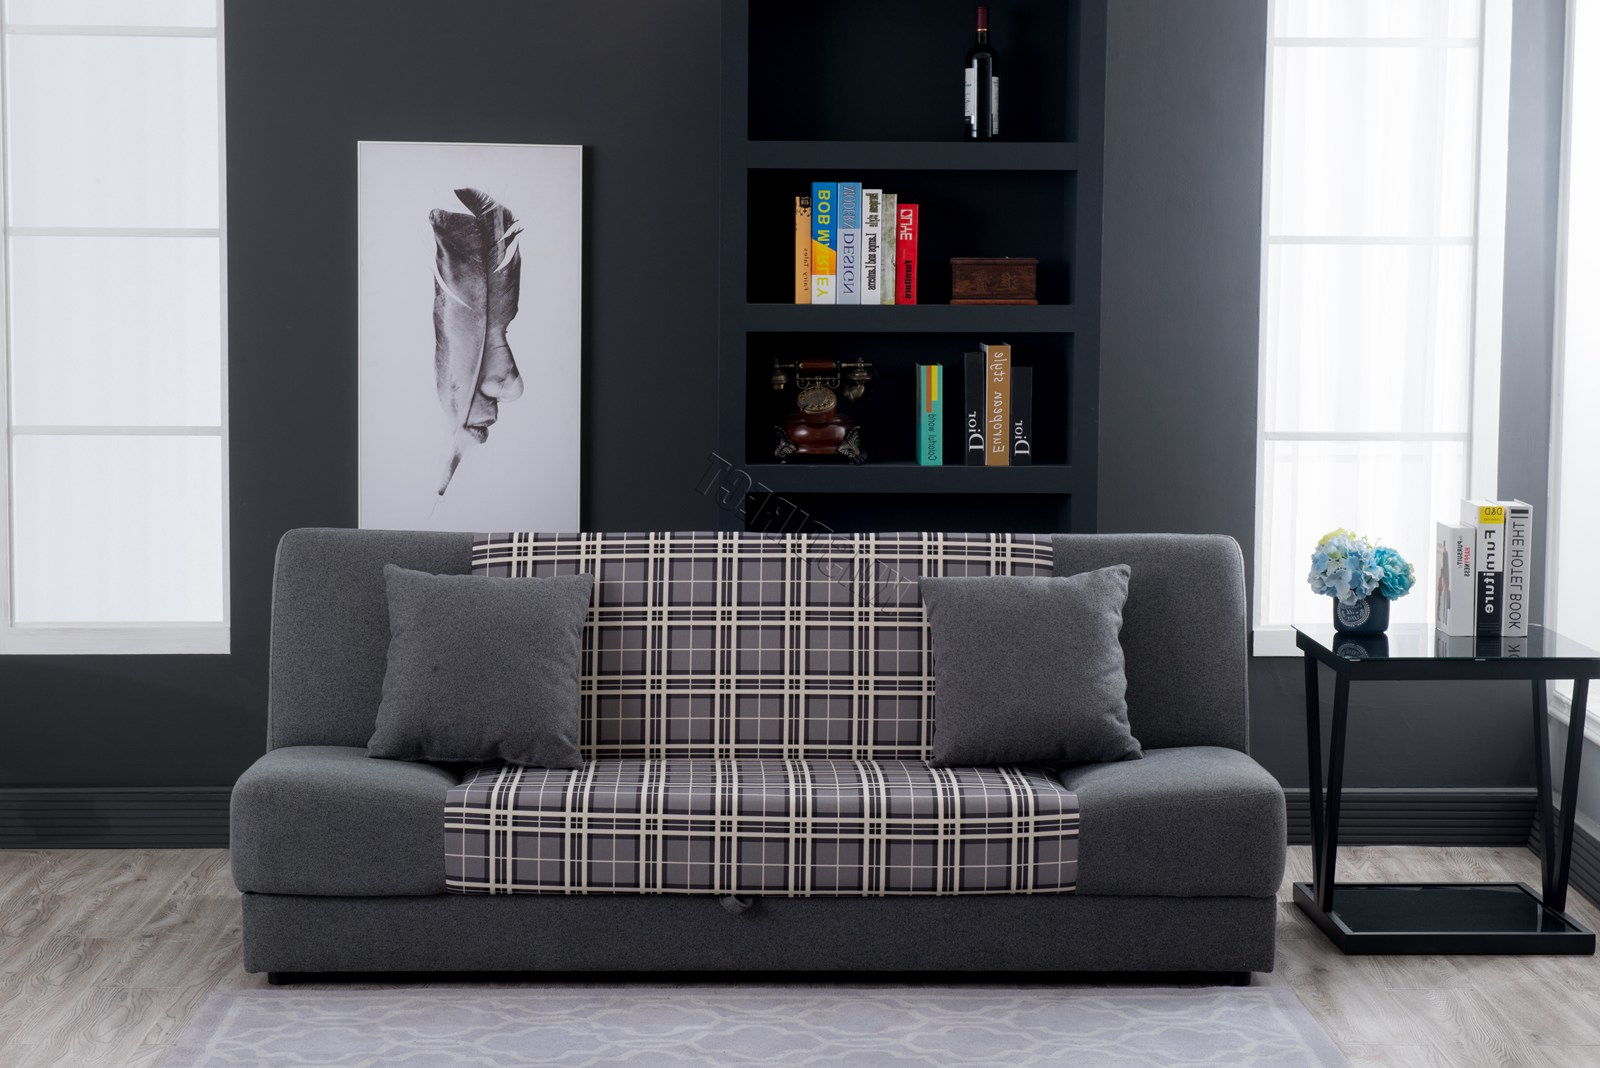 Newest Westwood 3 Seater Click Clack Fabric Sofa Bed Recliner Pertaining To Celine Sectional Futon Sofas With Storage Reclining Couch (View 21 of 25)